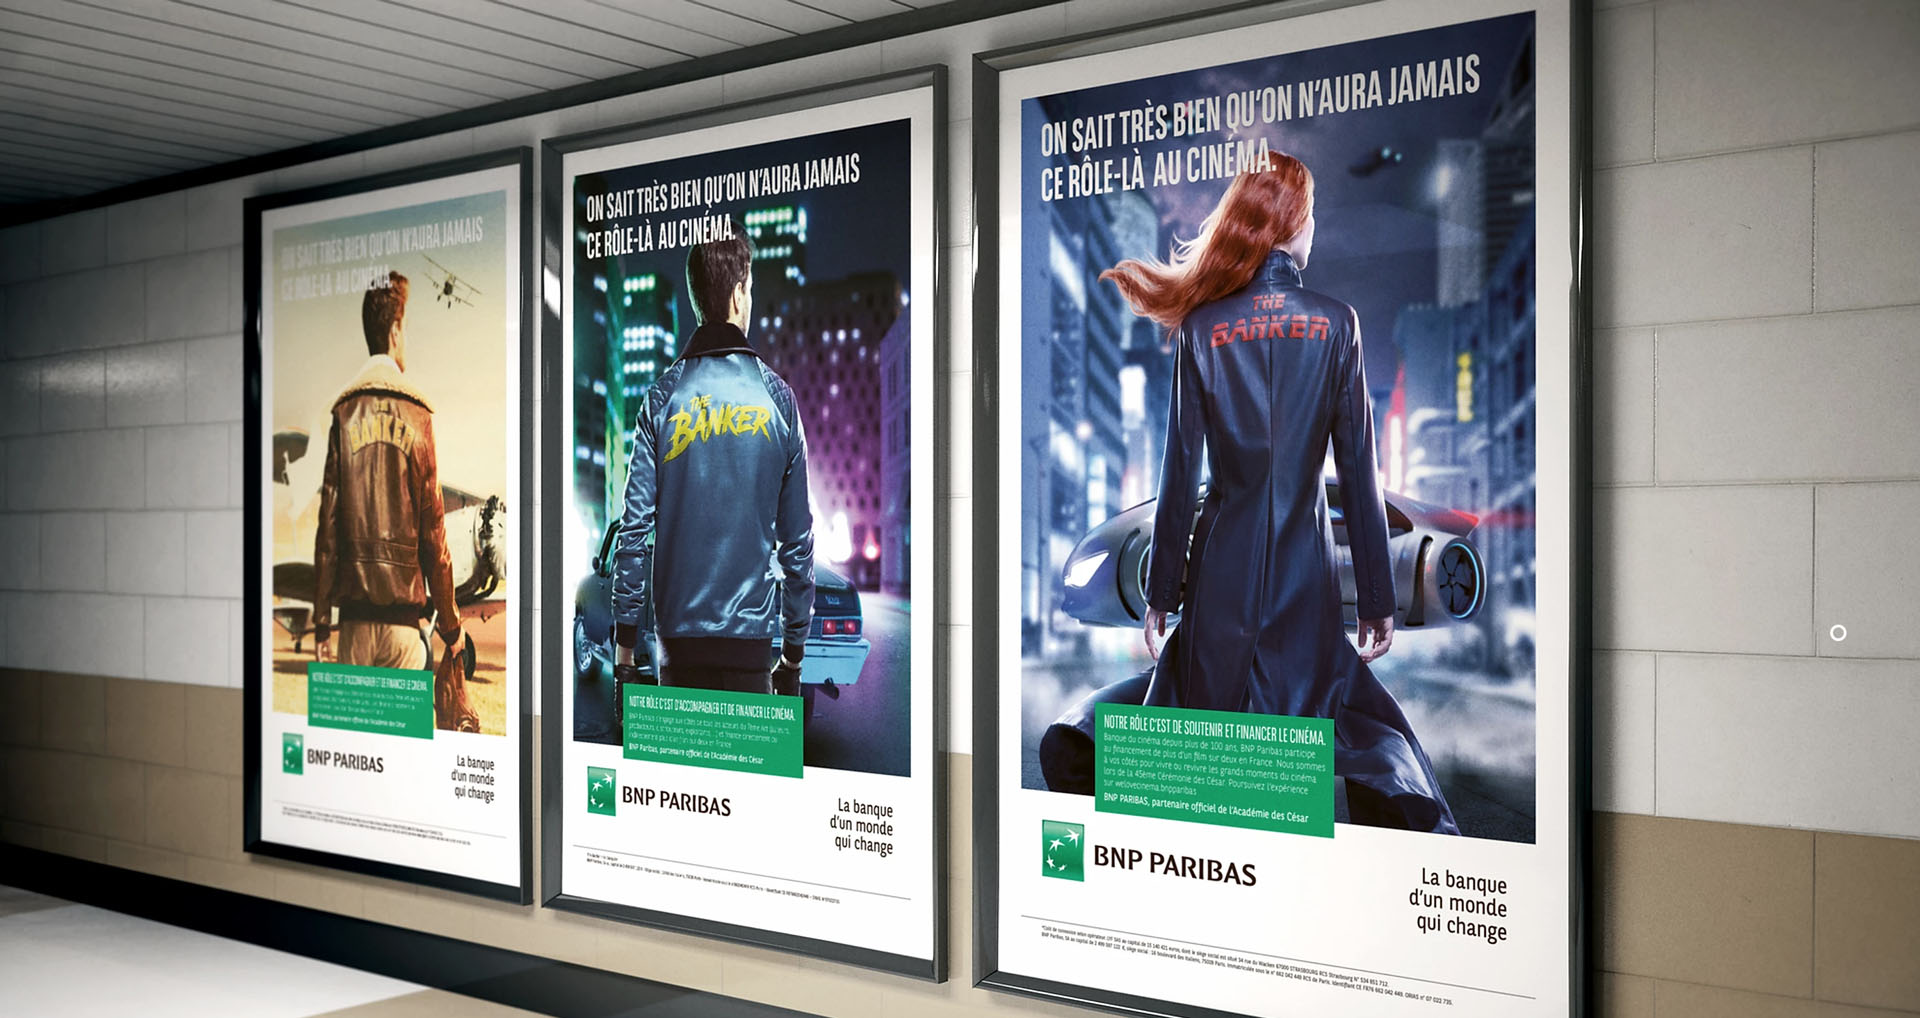 mockup of posters by Simon Duhamel for bank BNP Paribas